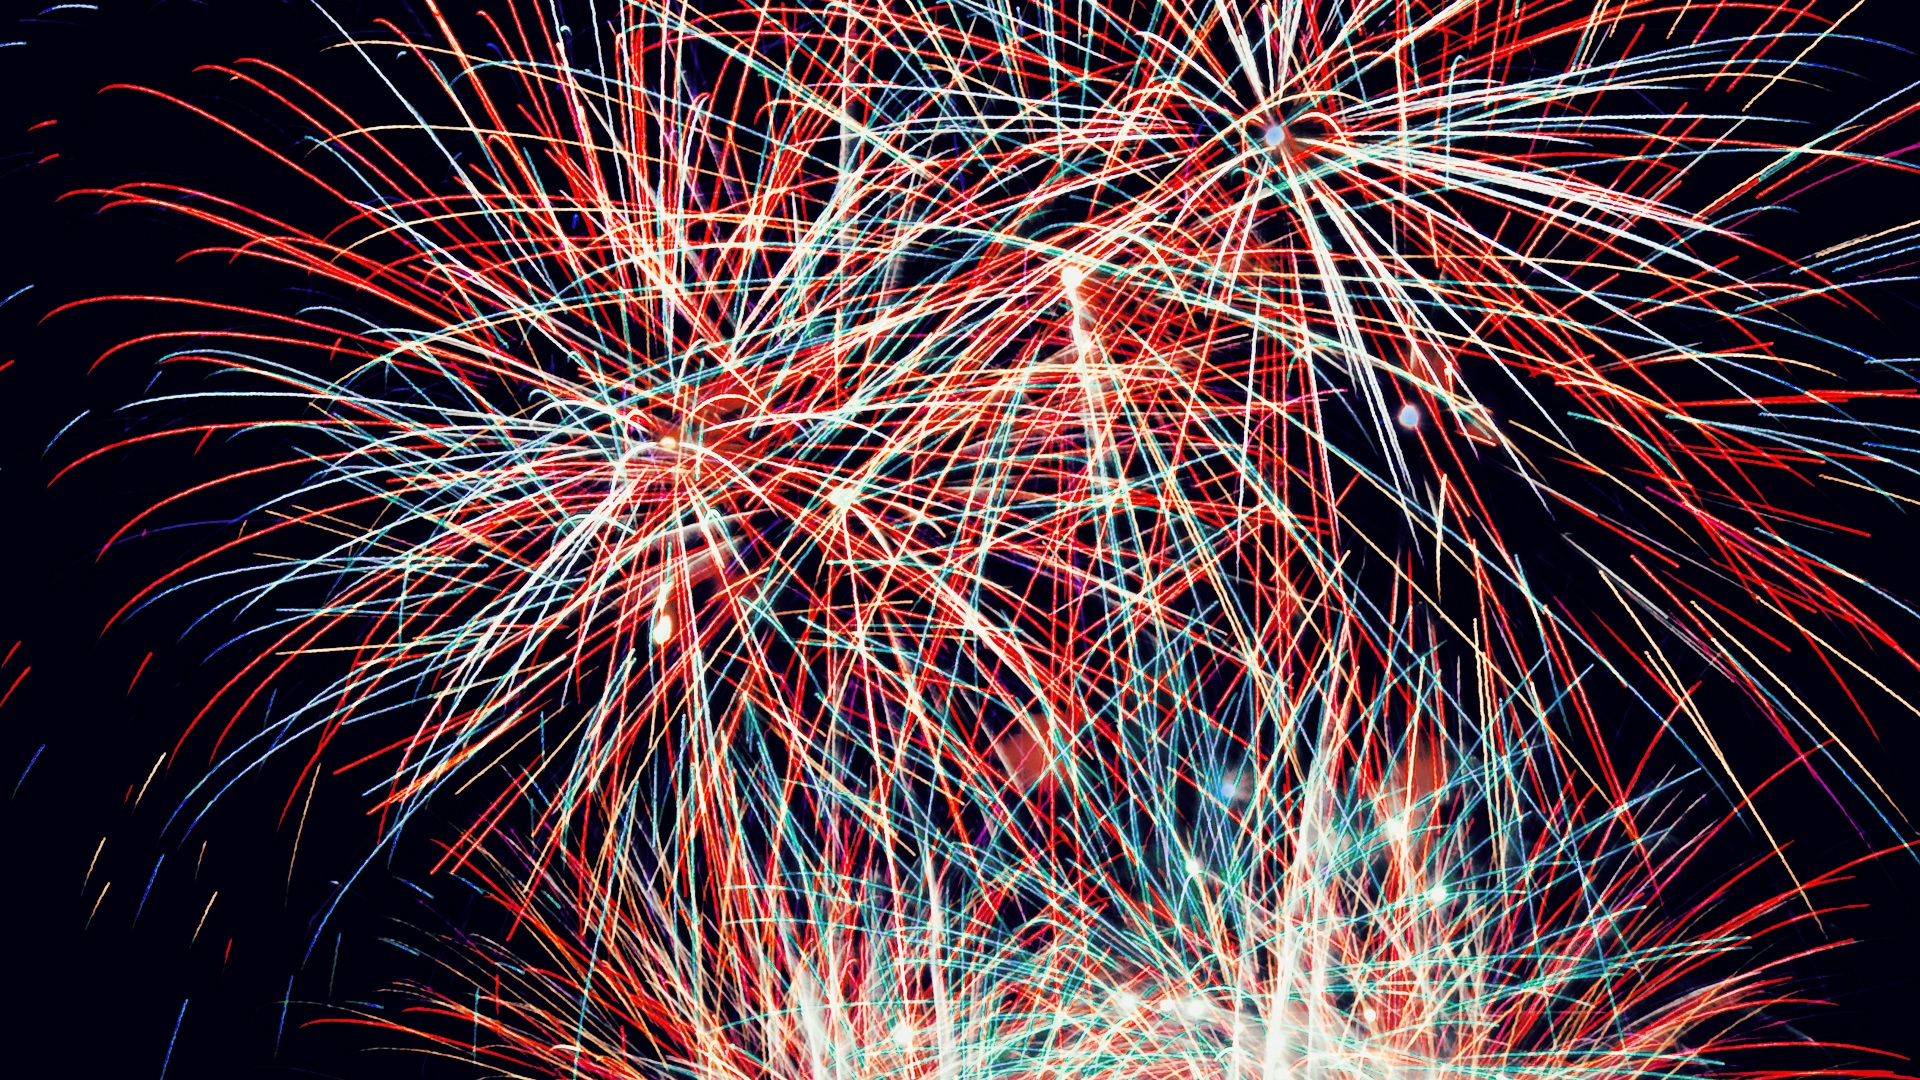 fireworks download 758 wallpapers - photo #49